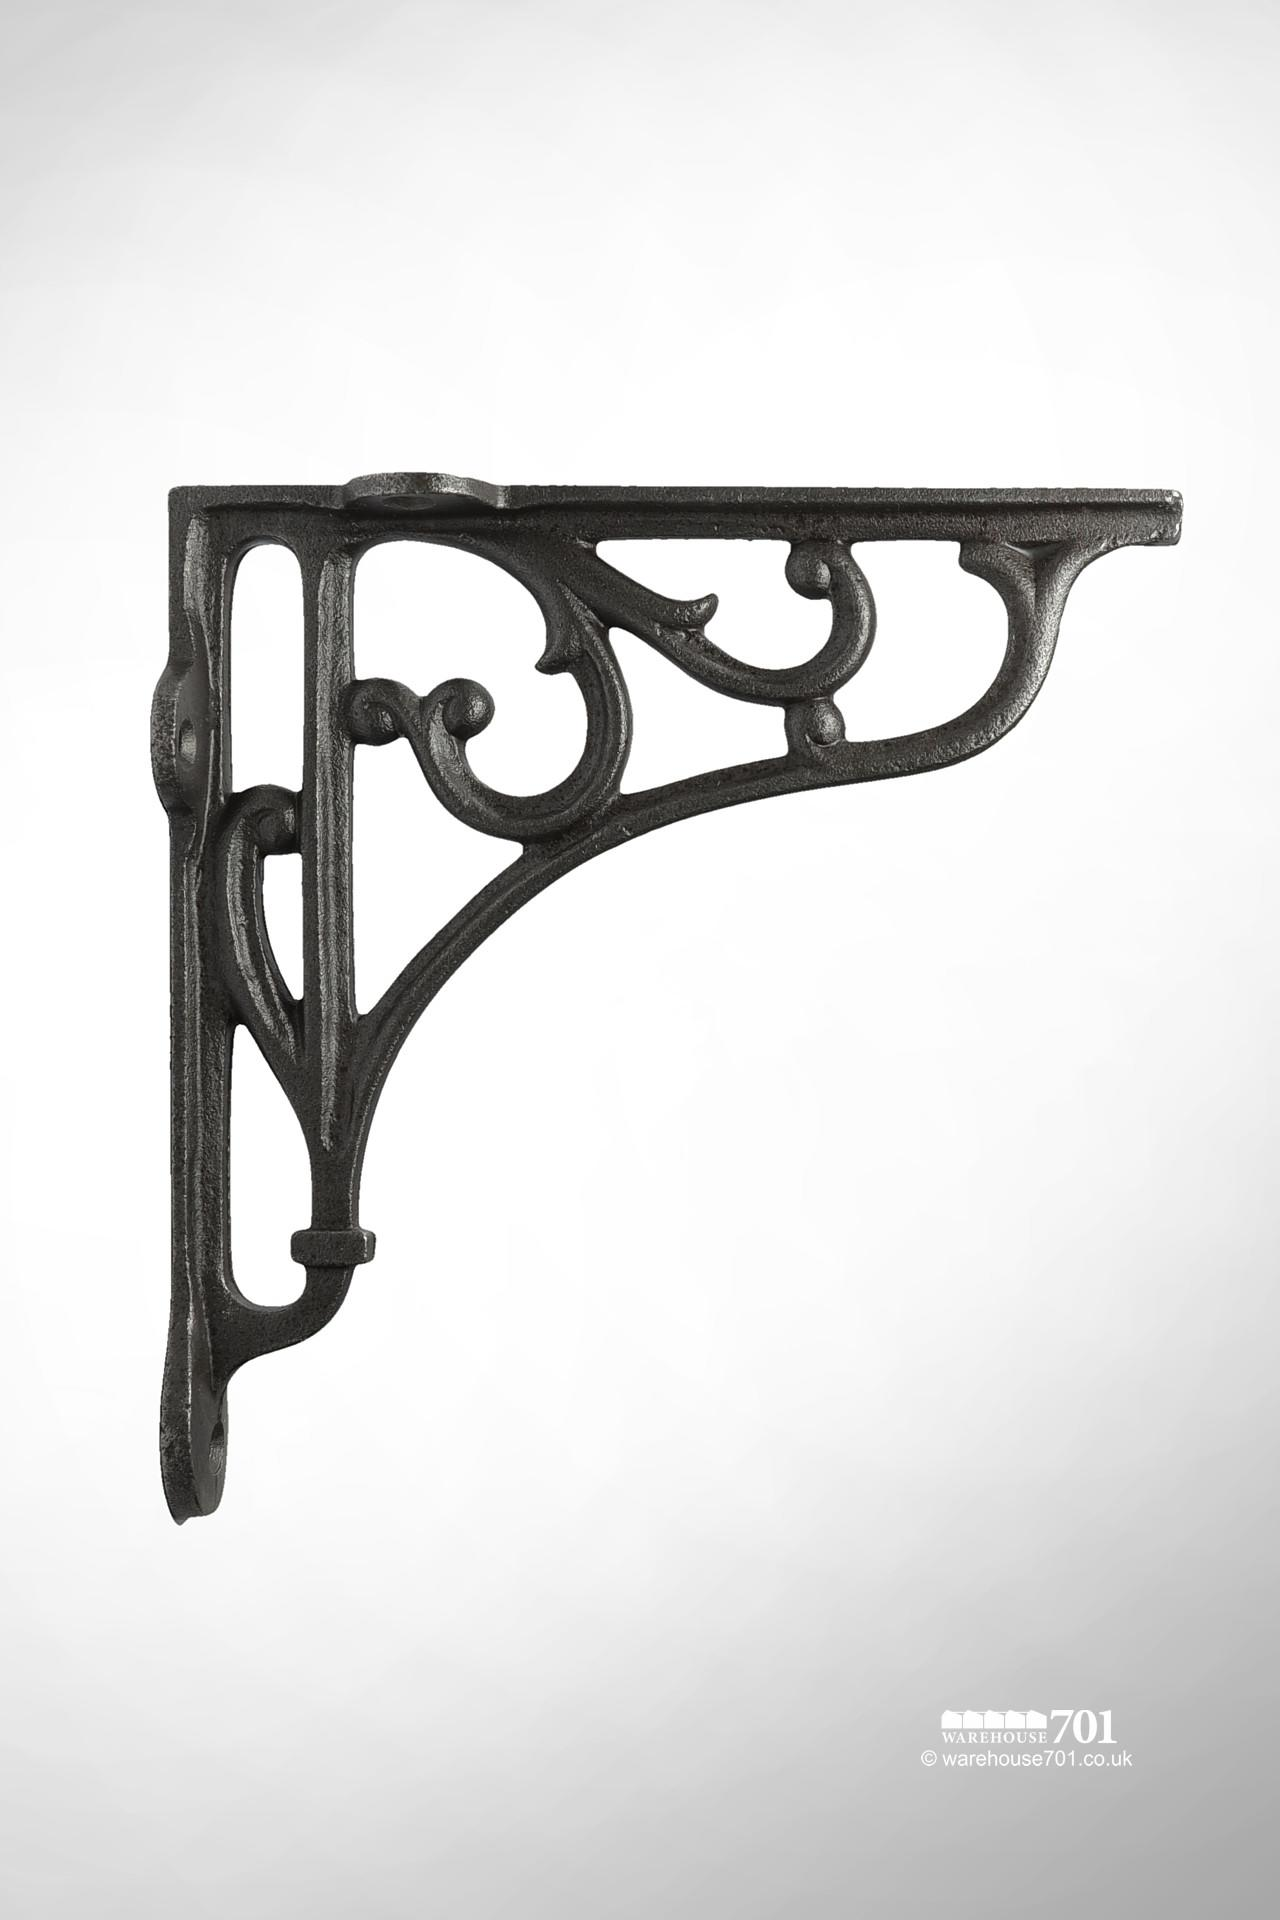 New Satin Black Cast Iron Shelf or Wall Bracket with a Decorative Scroll Design #4